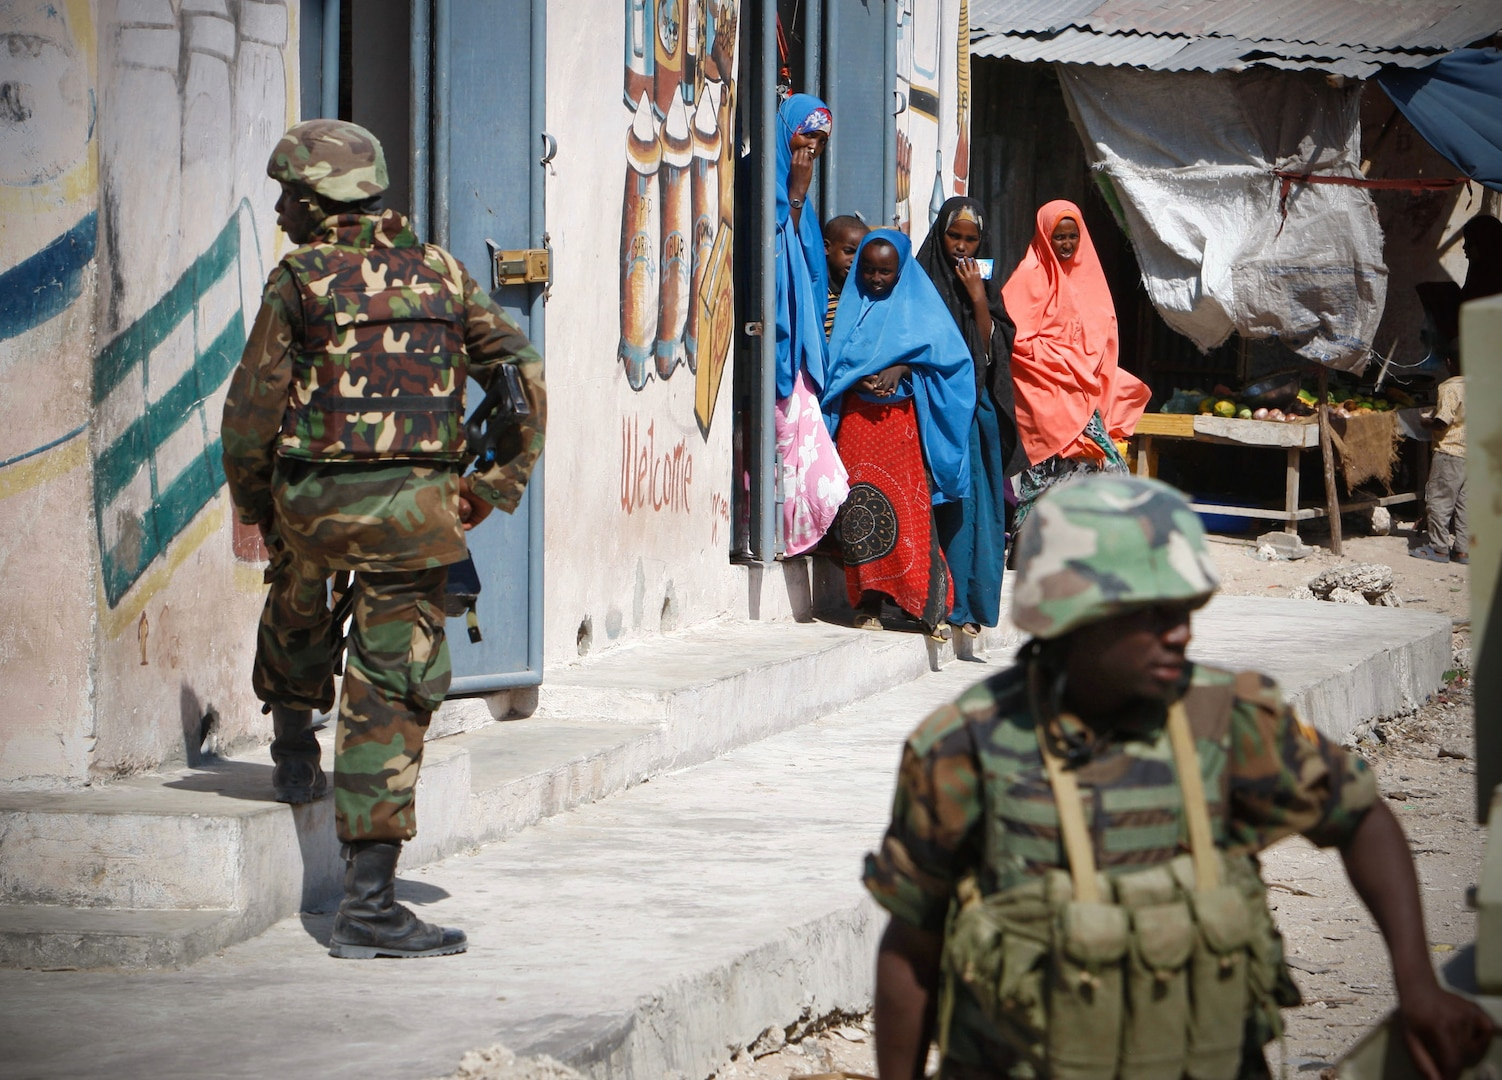 SOMALIA, Mogadishu: In a photograph taken 5 Dec and released by the African Union-United Nations Information Support Team 8 Dec, Somali women look on as Ugandan soldier serving with the African Union Mission in Somalia (AMISOM) take up defensive positions in Torfiq market in the Yaaqshid District of northern Mogadishu. In the face of a surge of car bombings and improvised explosive device (IED) attacks, the 9,700-strong African Union force continues to conduct security and counter-IED operations in and around the Somali capital. AU-UN IST PHOTO / STUART PRICE.